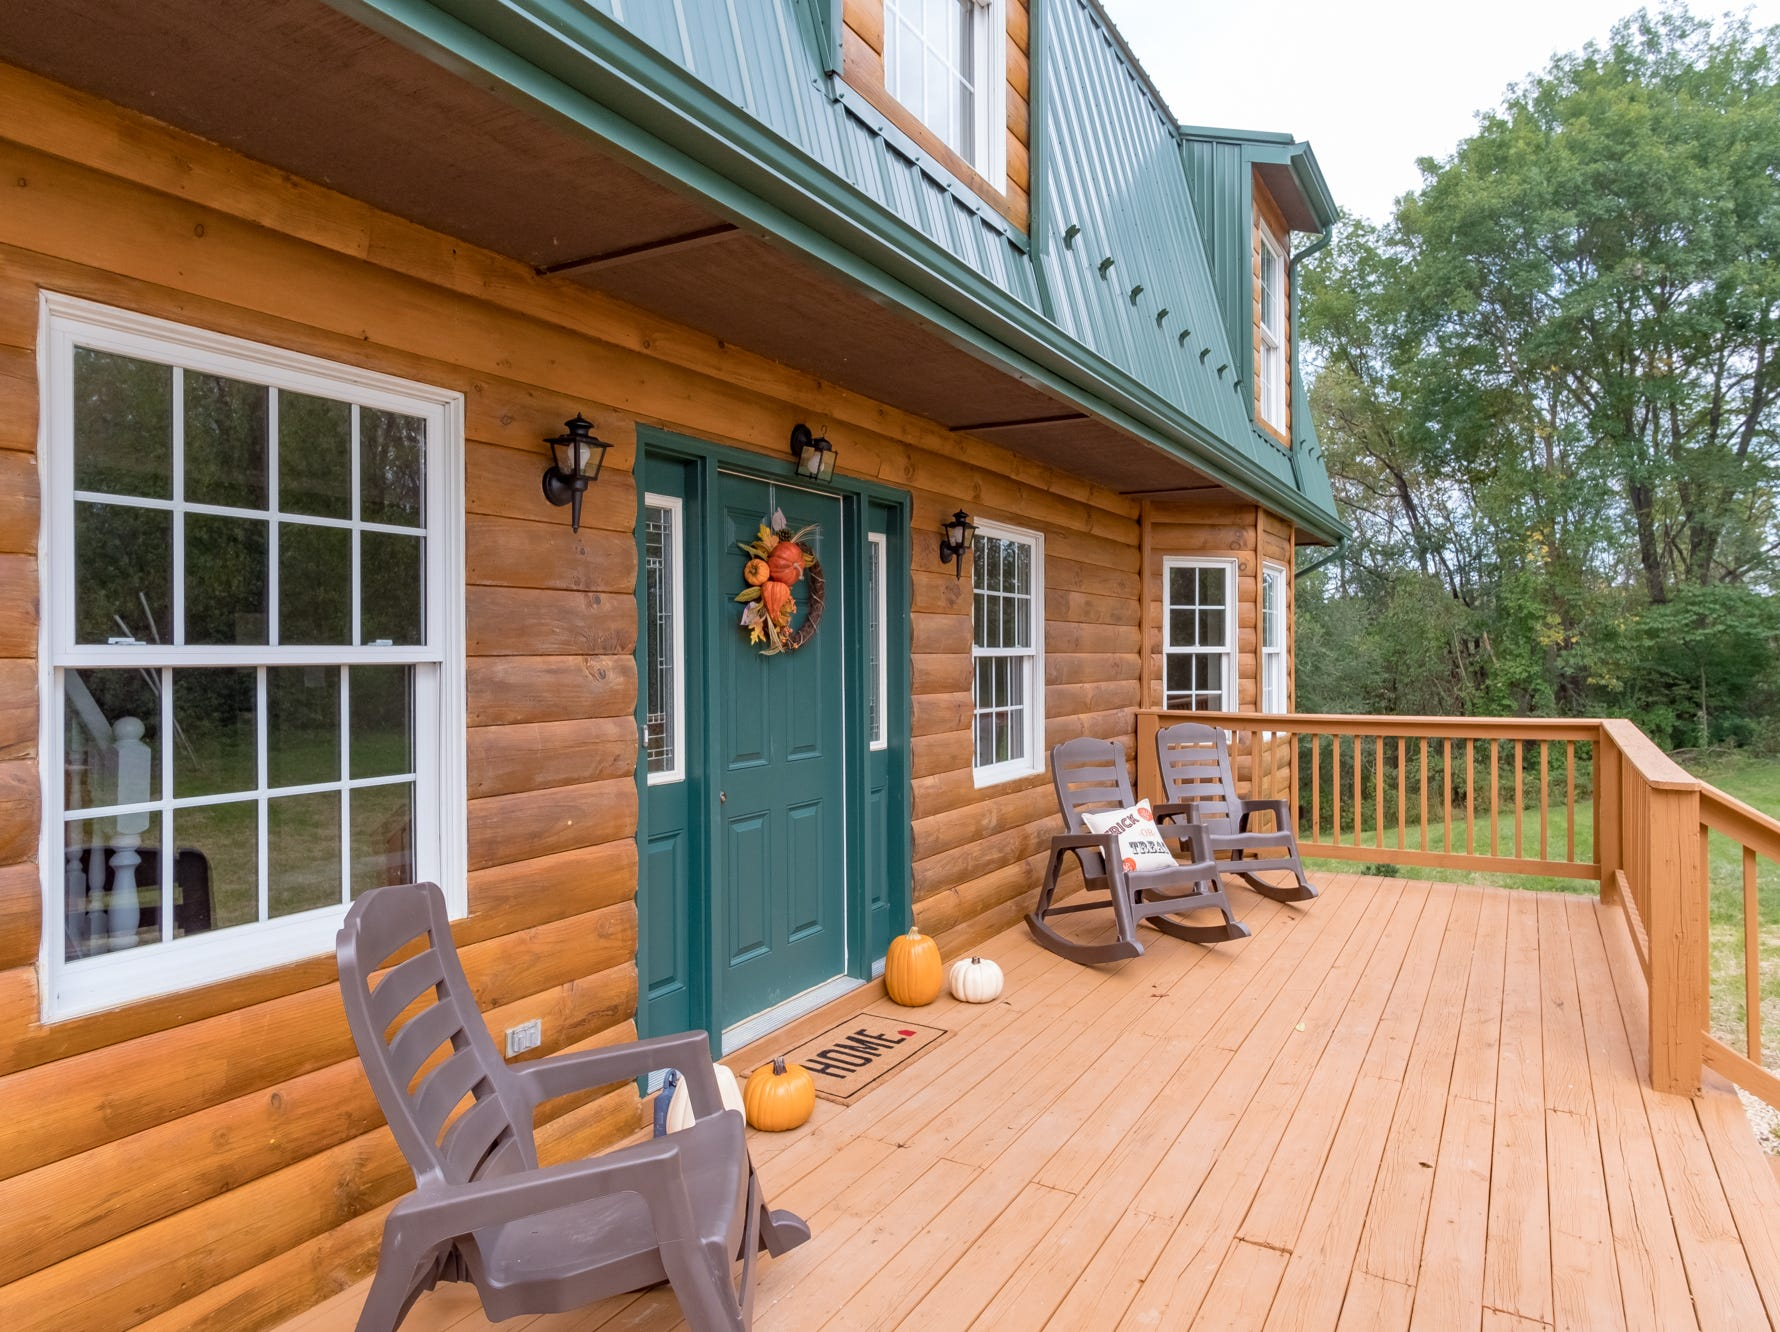 This log home at 11 S. Oak Lane is in the Waynesboro City limits and riverfront with acreage.